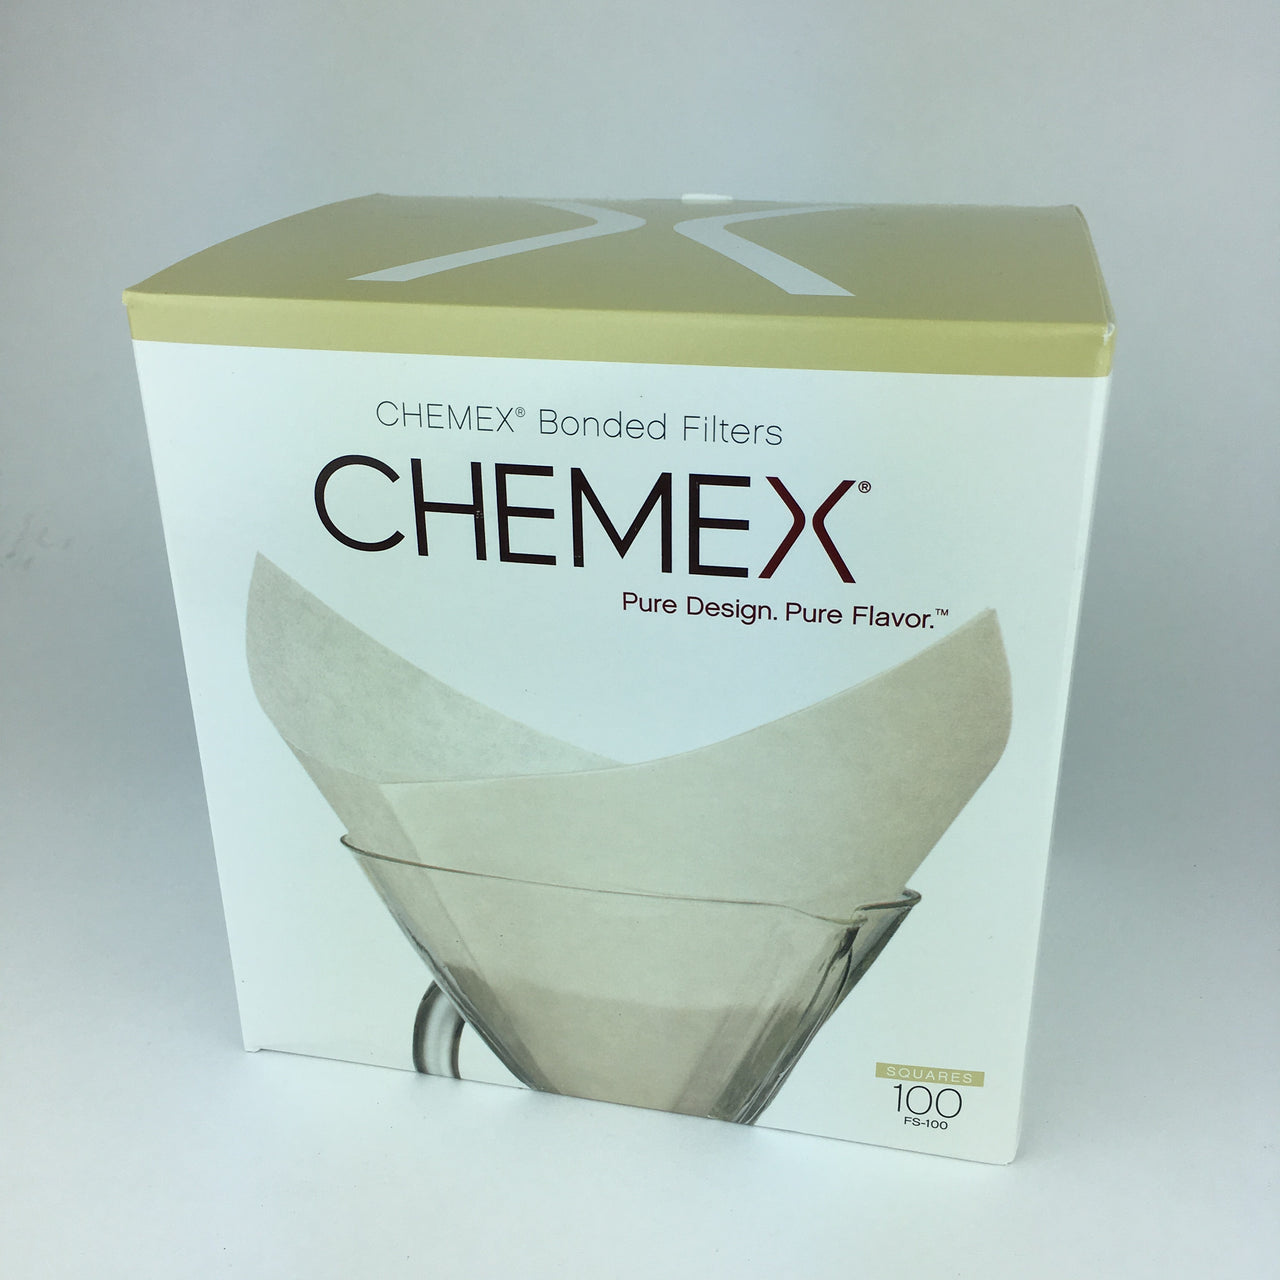 Box of FC-100 Chemex coffee filters for pour over coffee